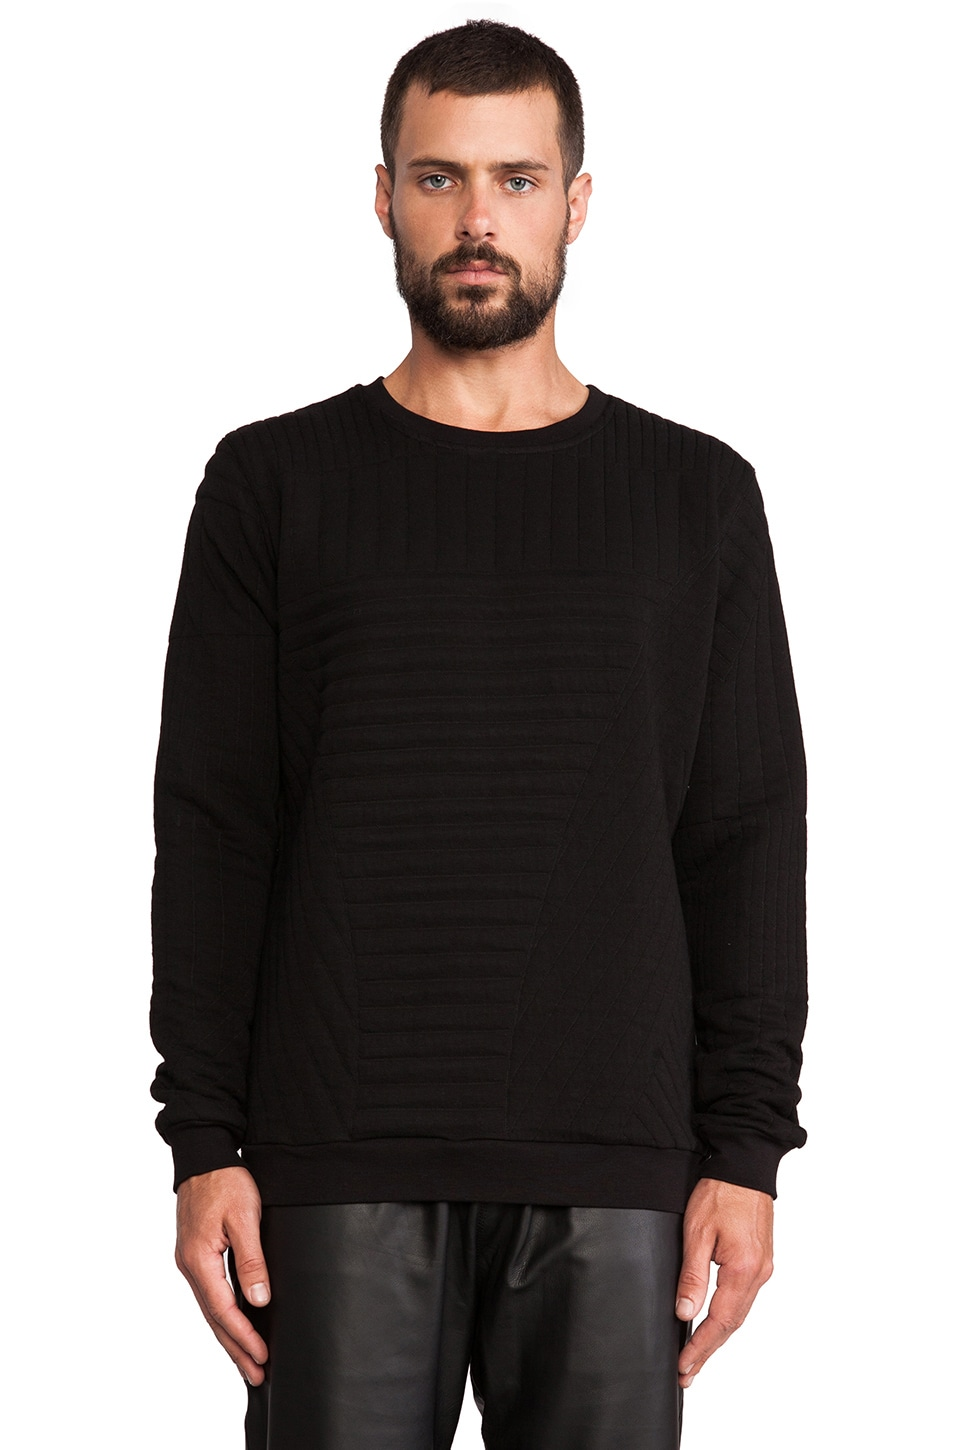 lot78 Quilted Sweatshirt in Black